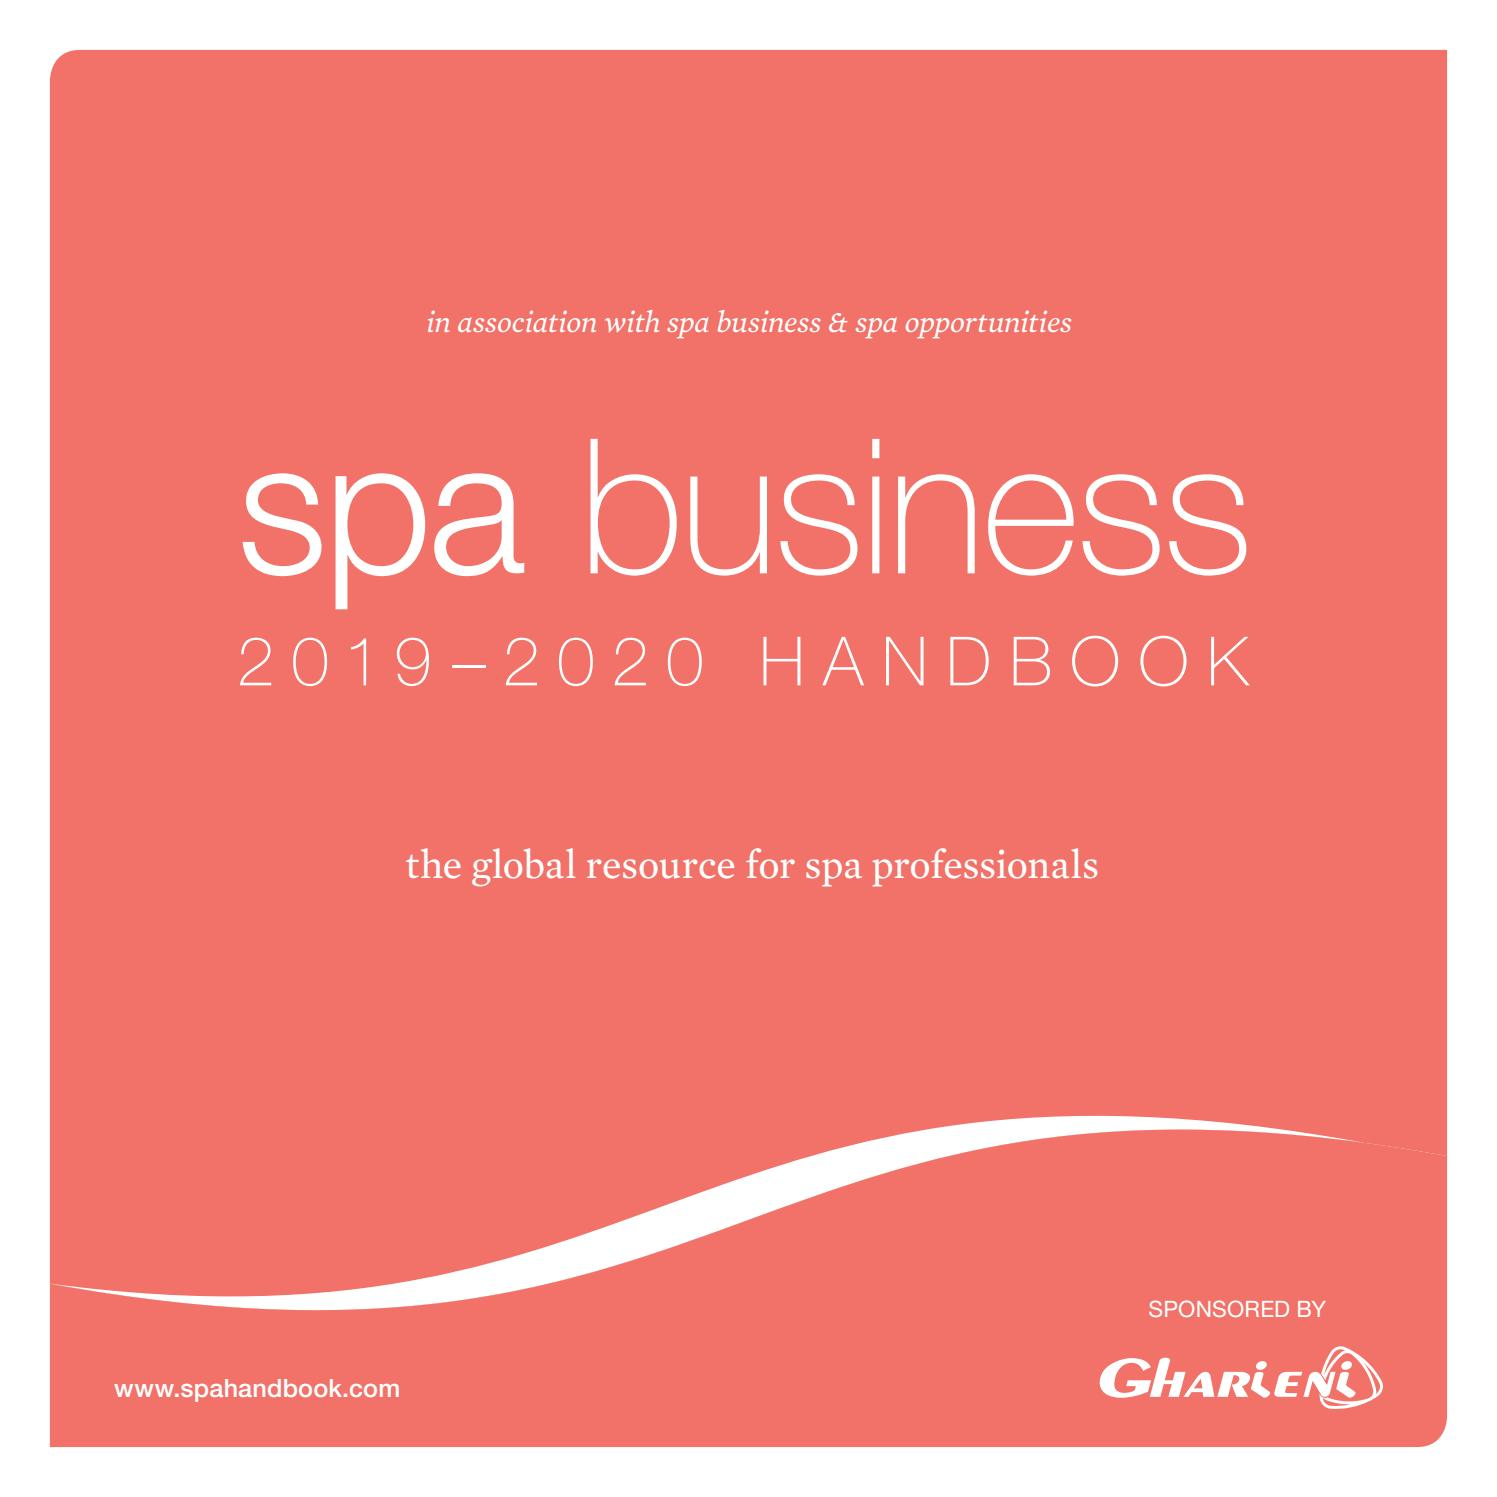 Rue Du Commerce Salon De Jardin Inspirant Spa Business Handbook 2019 2020 by Leisure Media issuu Of 23 Luxe Rue Du Commerce Salon De Jardin